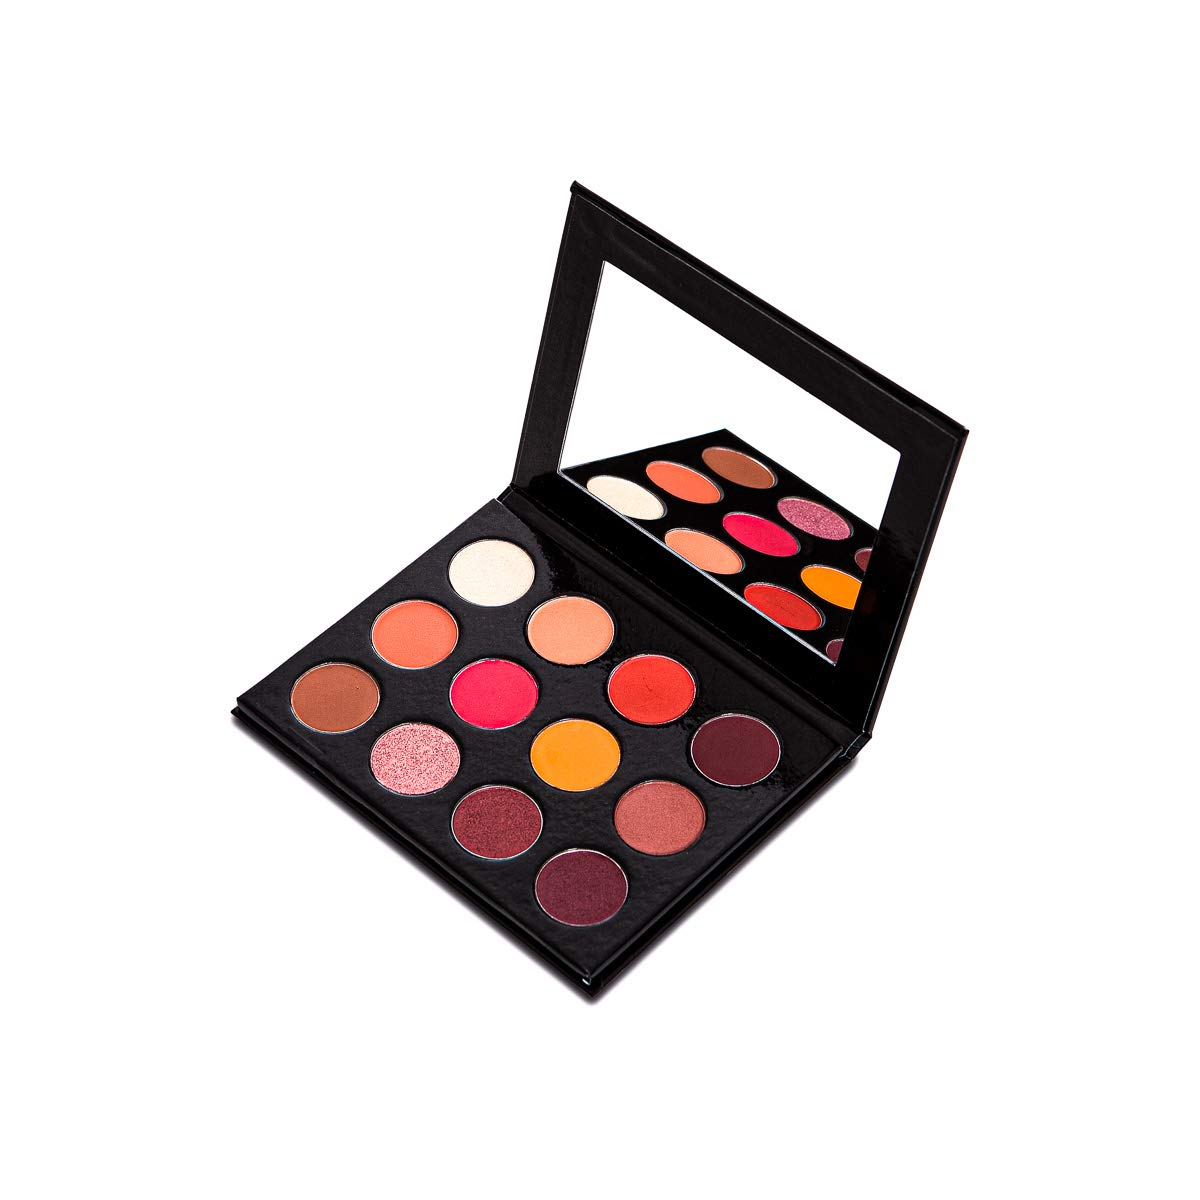 My Story Eyeshadow Palette (Outstanding Nature, Eyeshadow rose palette, pink, red, bronze, Colors of a leaf found in nature for brighten your eyes)